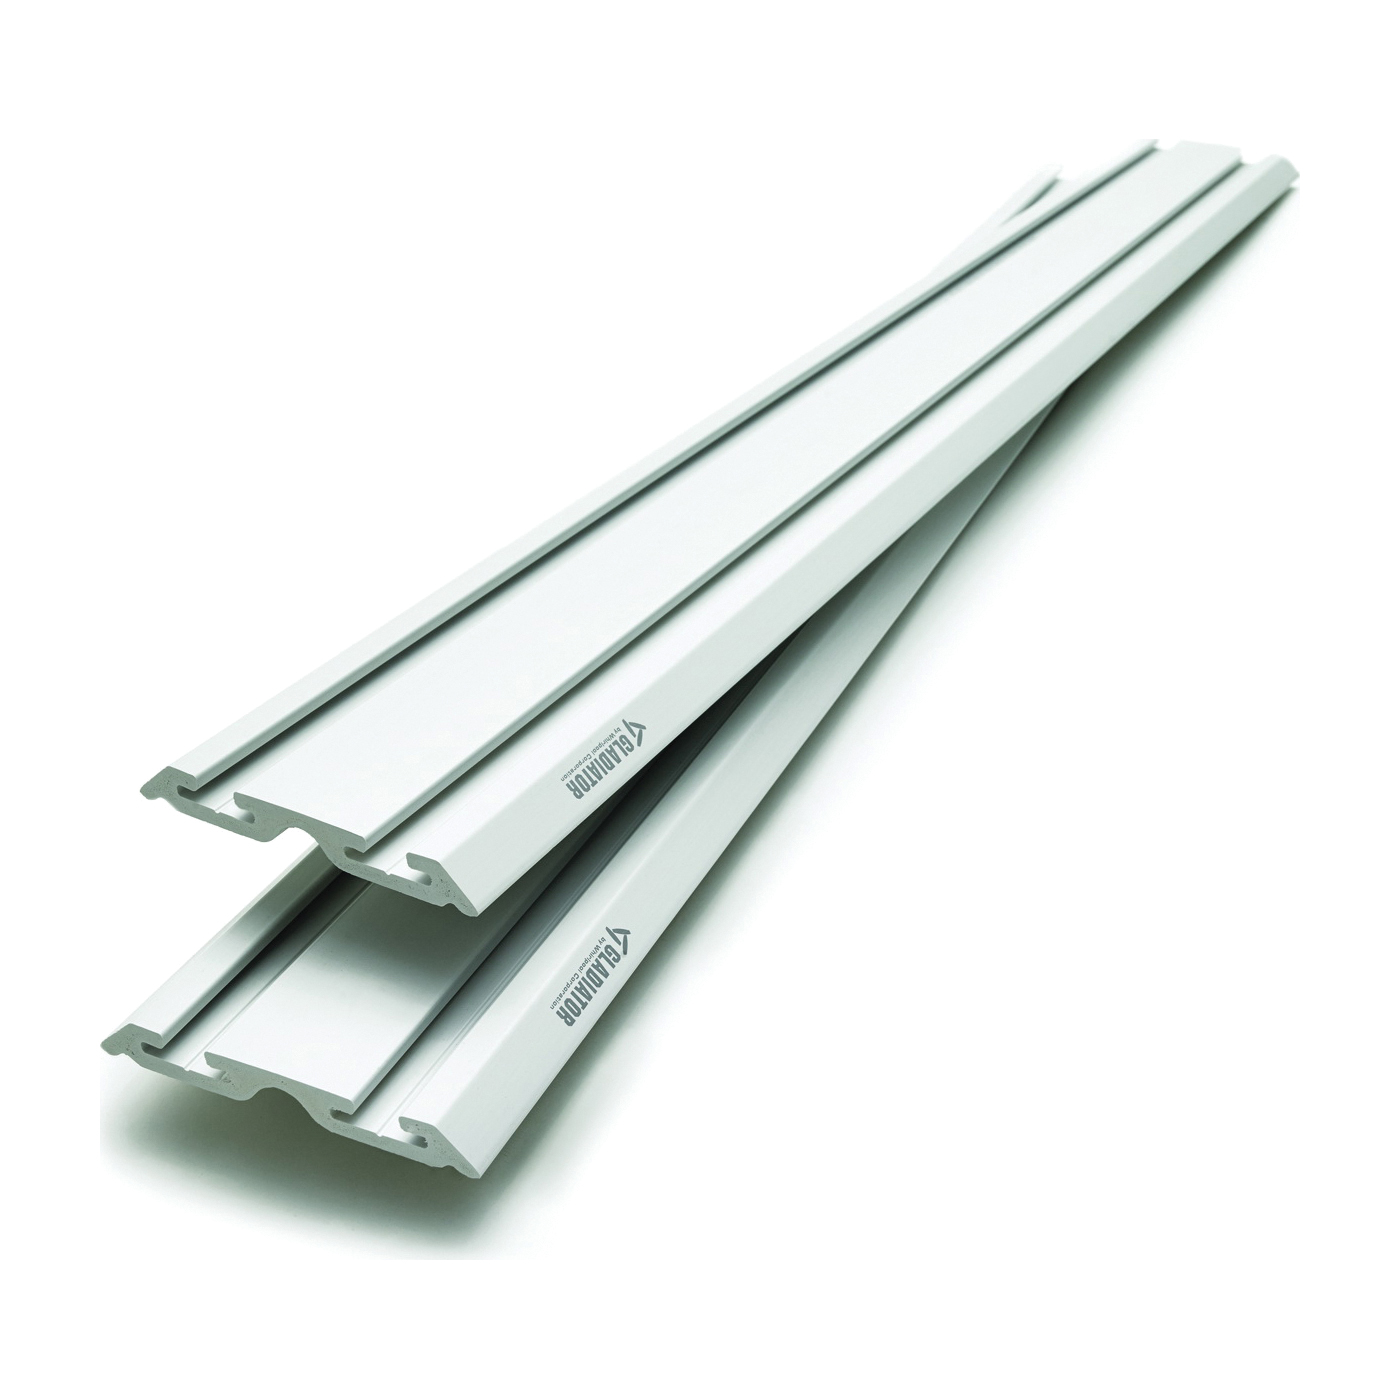 Picture of GLADIATOR GAWC042PZY Wall Channel, 75 lb Capacity, PVC, Gray, 48 in L, 6 in W